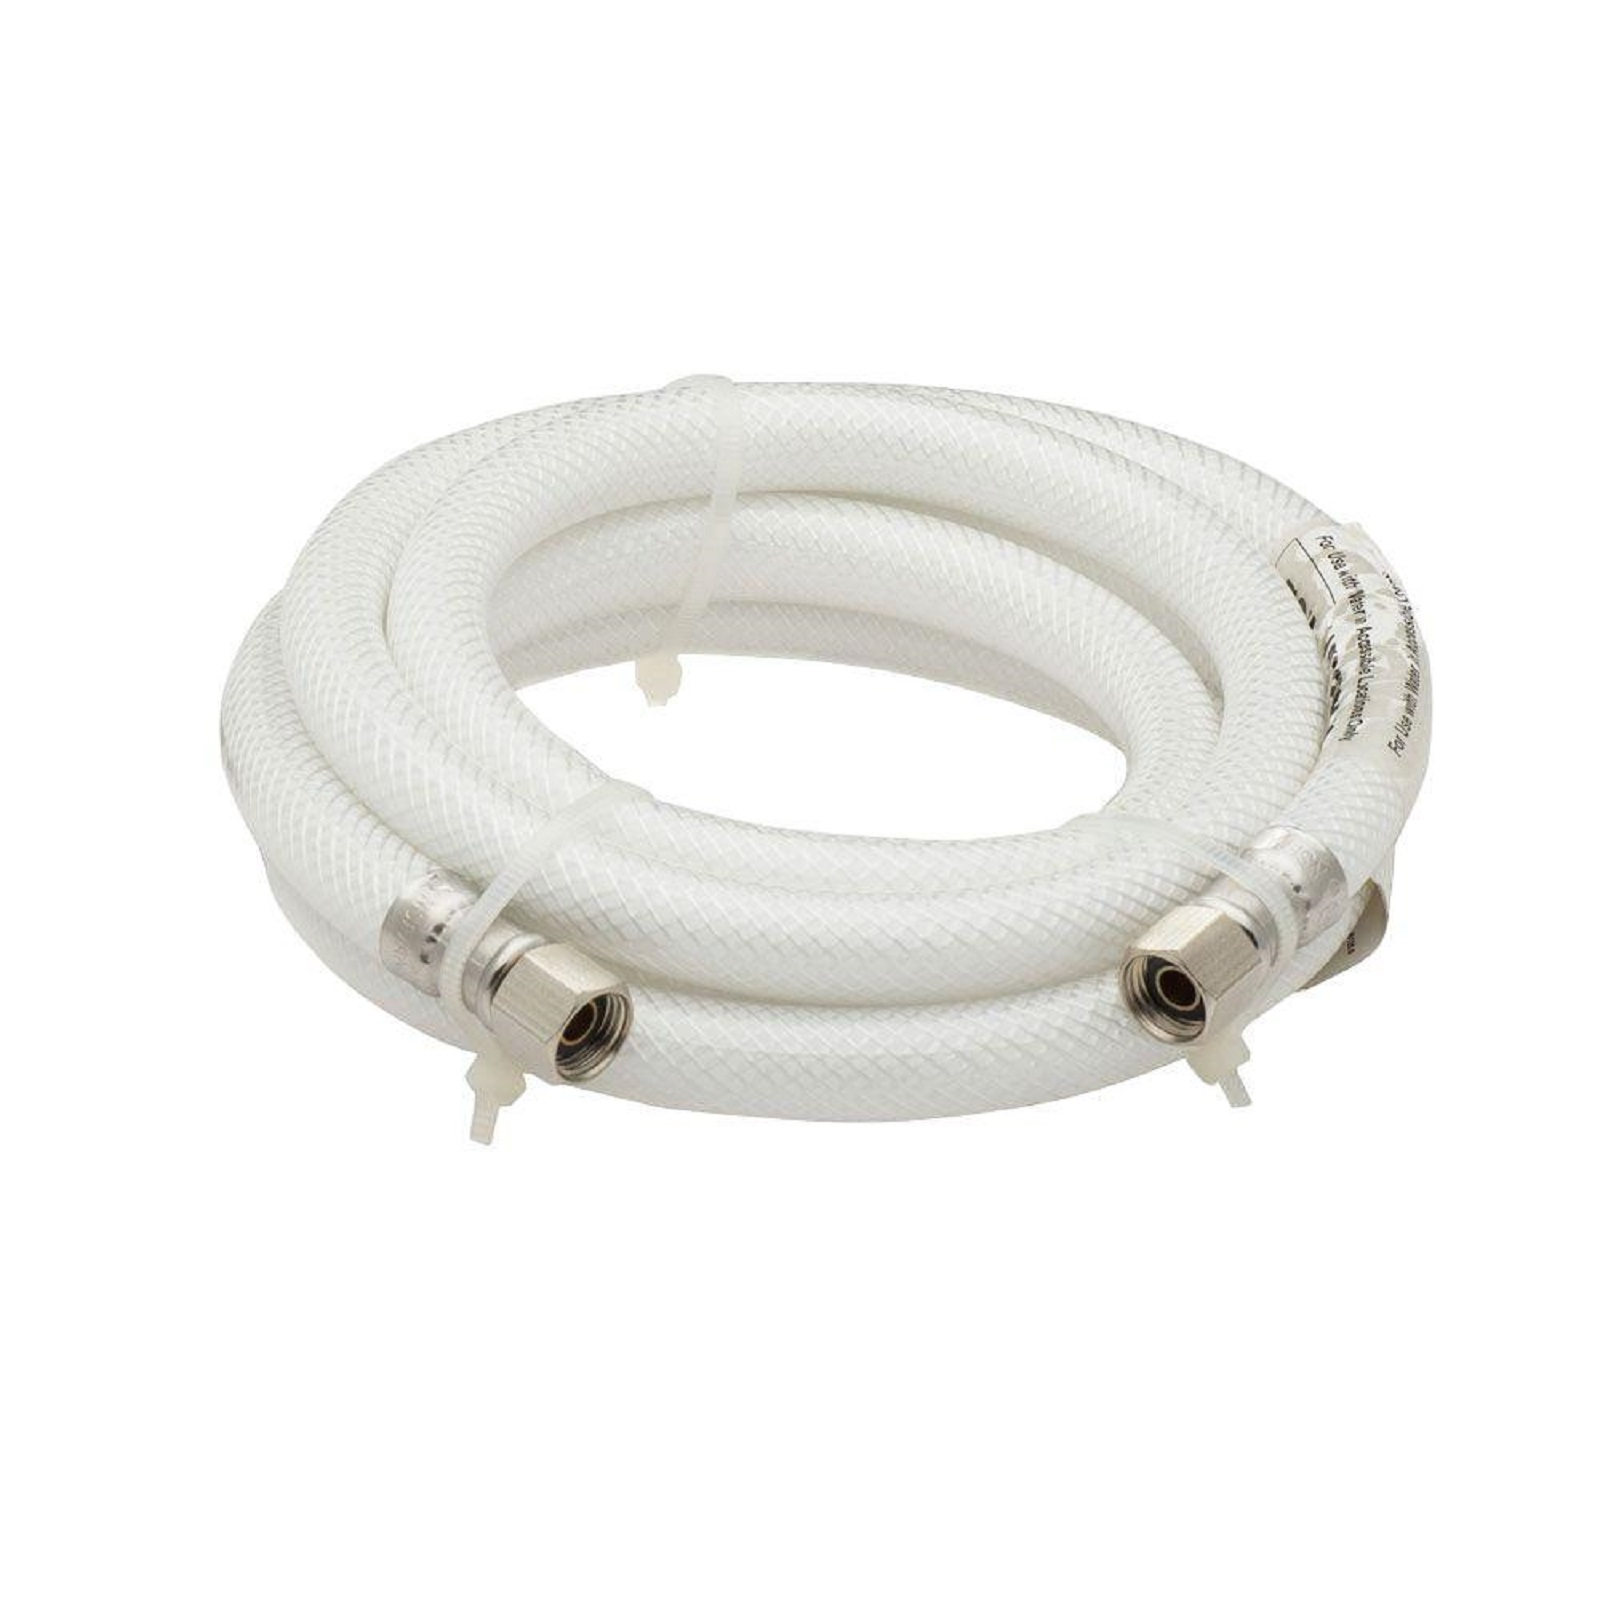 Frigidaire 33001 5' Poly Refrigeration Waterline Installation Kit